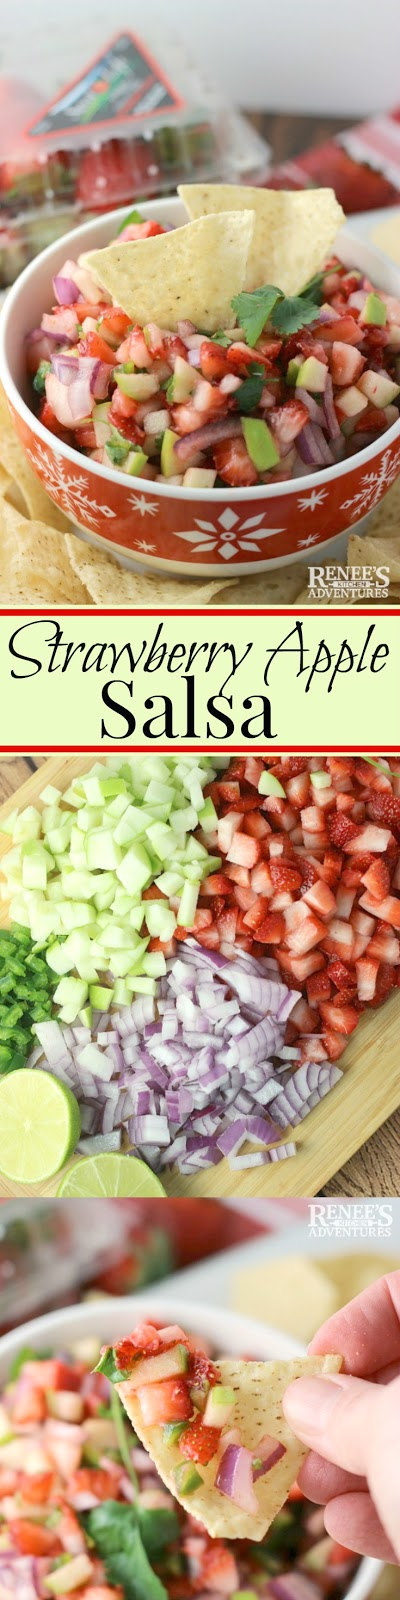 Strawberry Apple Salsa